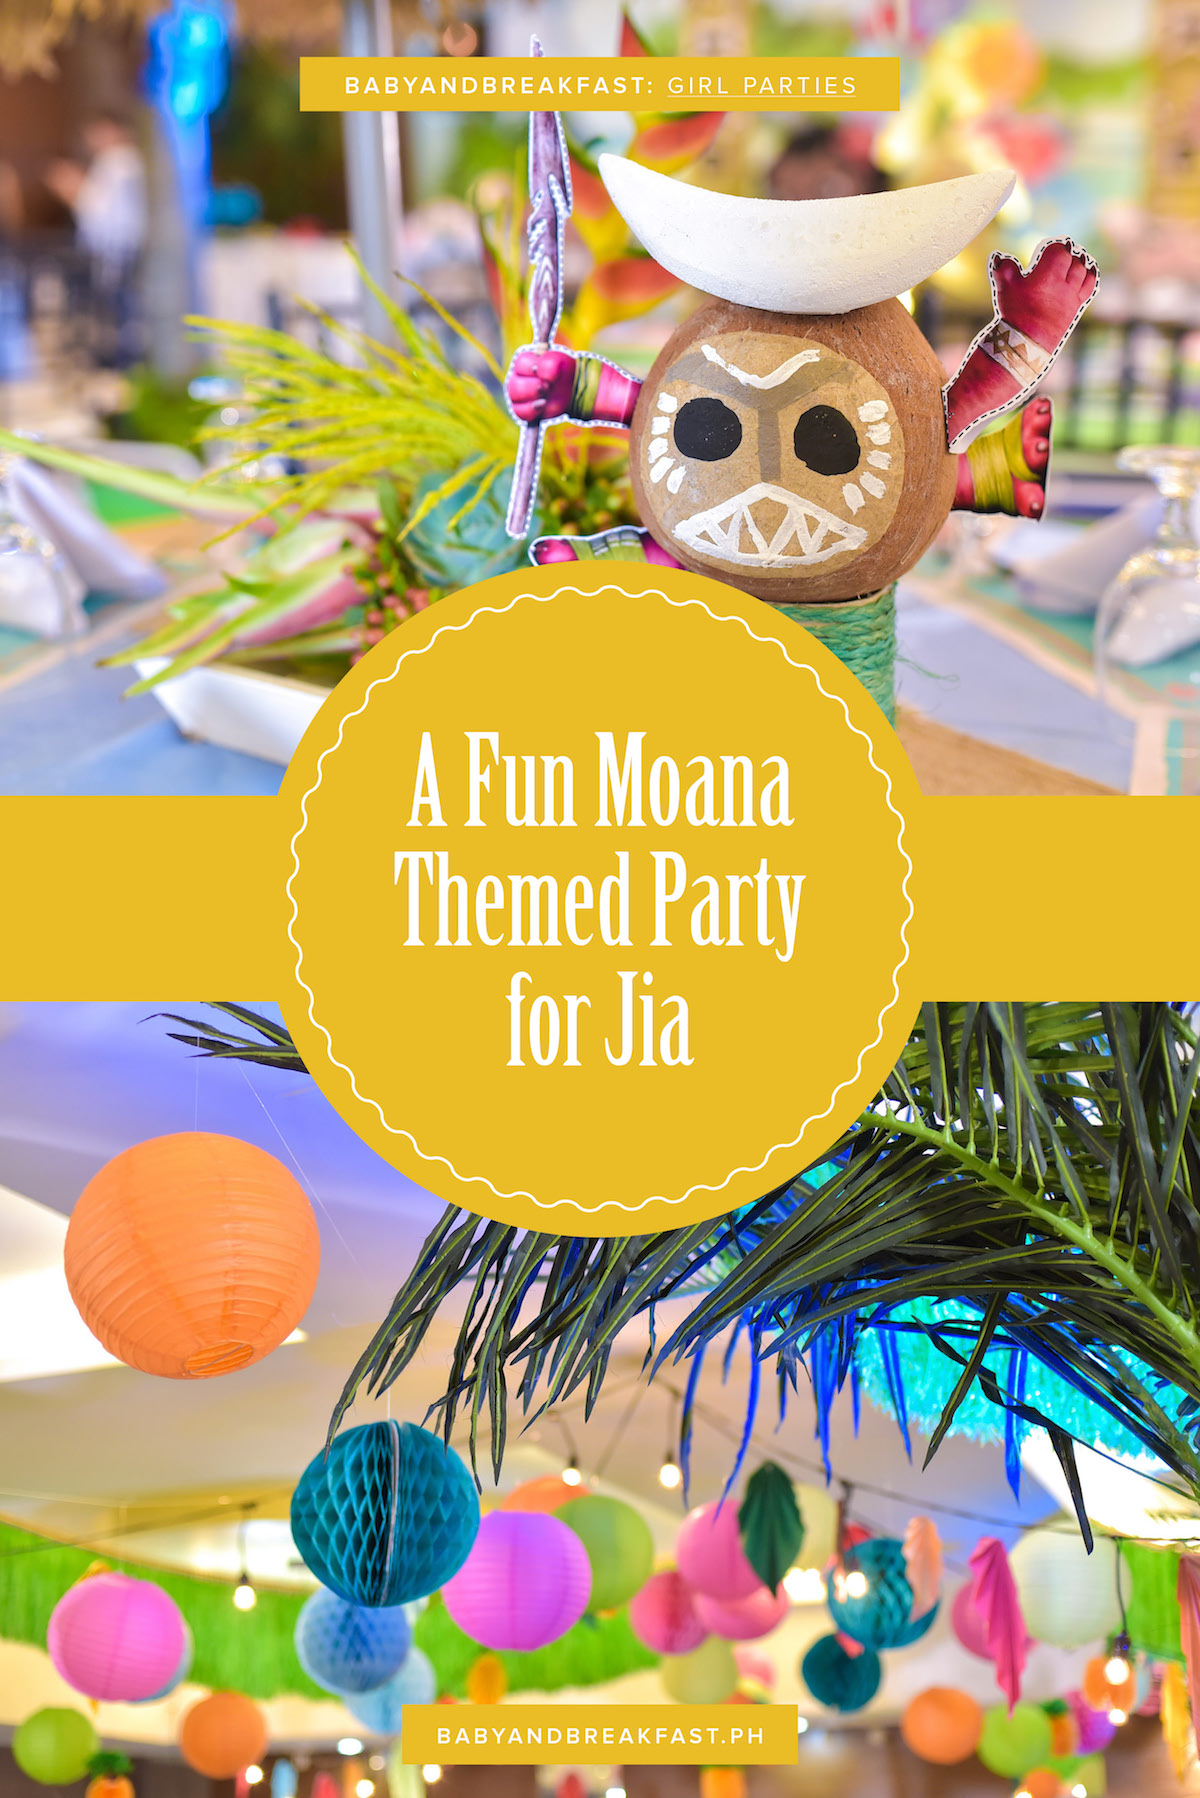 Baby and Breakfast: Girl Parties A Fun Moana Themed Party for Jia